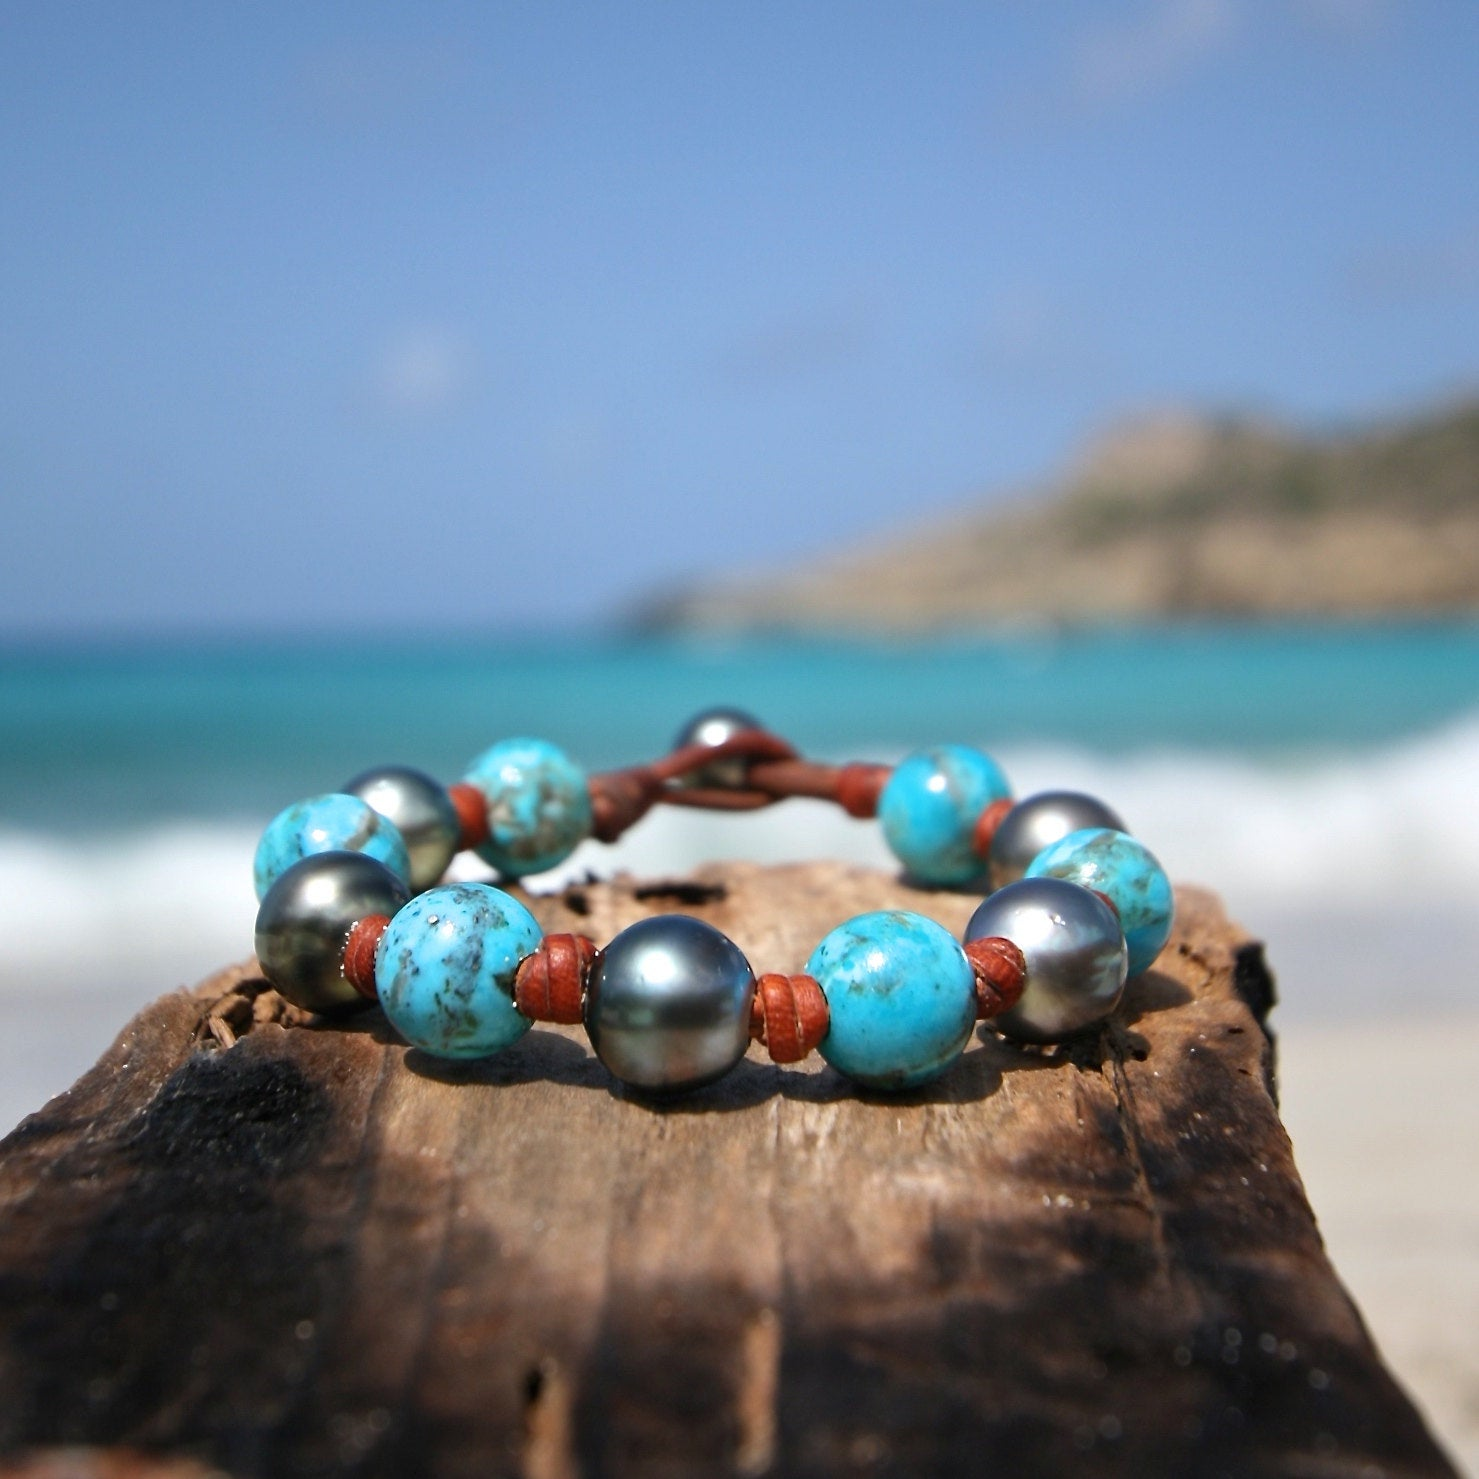 Genuine turquoise and Tahitian black pearls leather bracelet, pearl and leather jewelry, beach jewelry, St Barts jewelry, seaside jewelry.